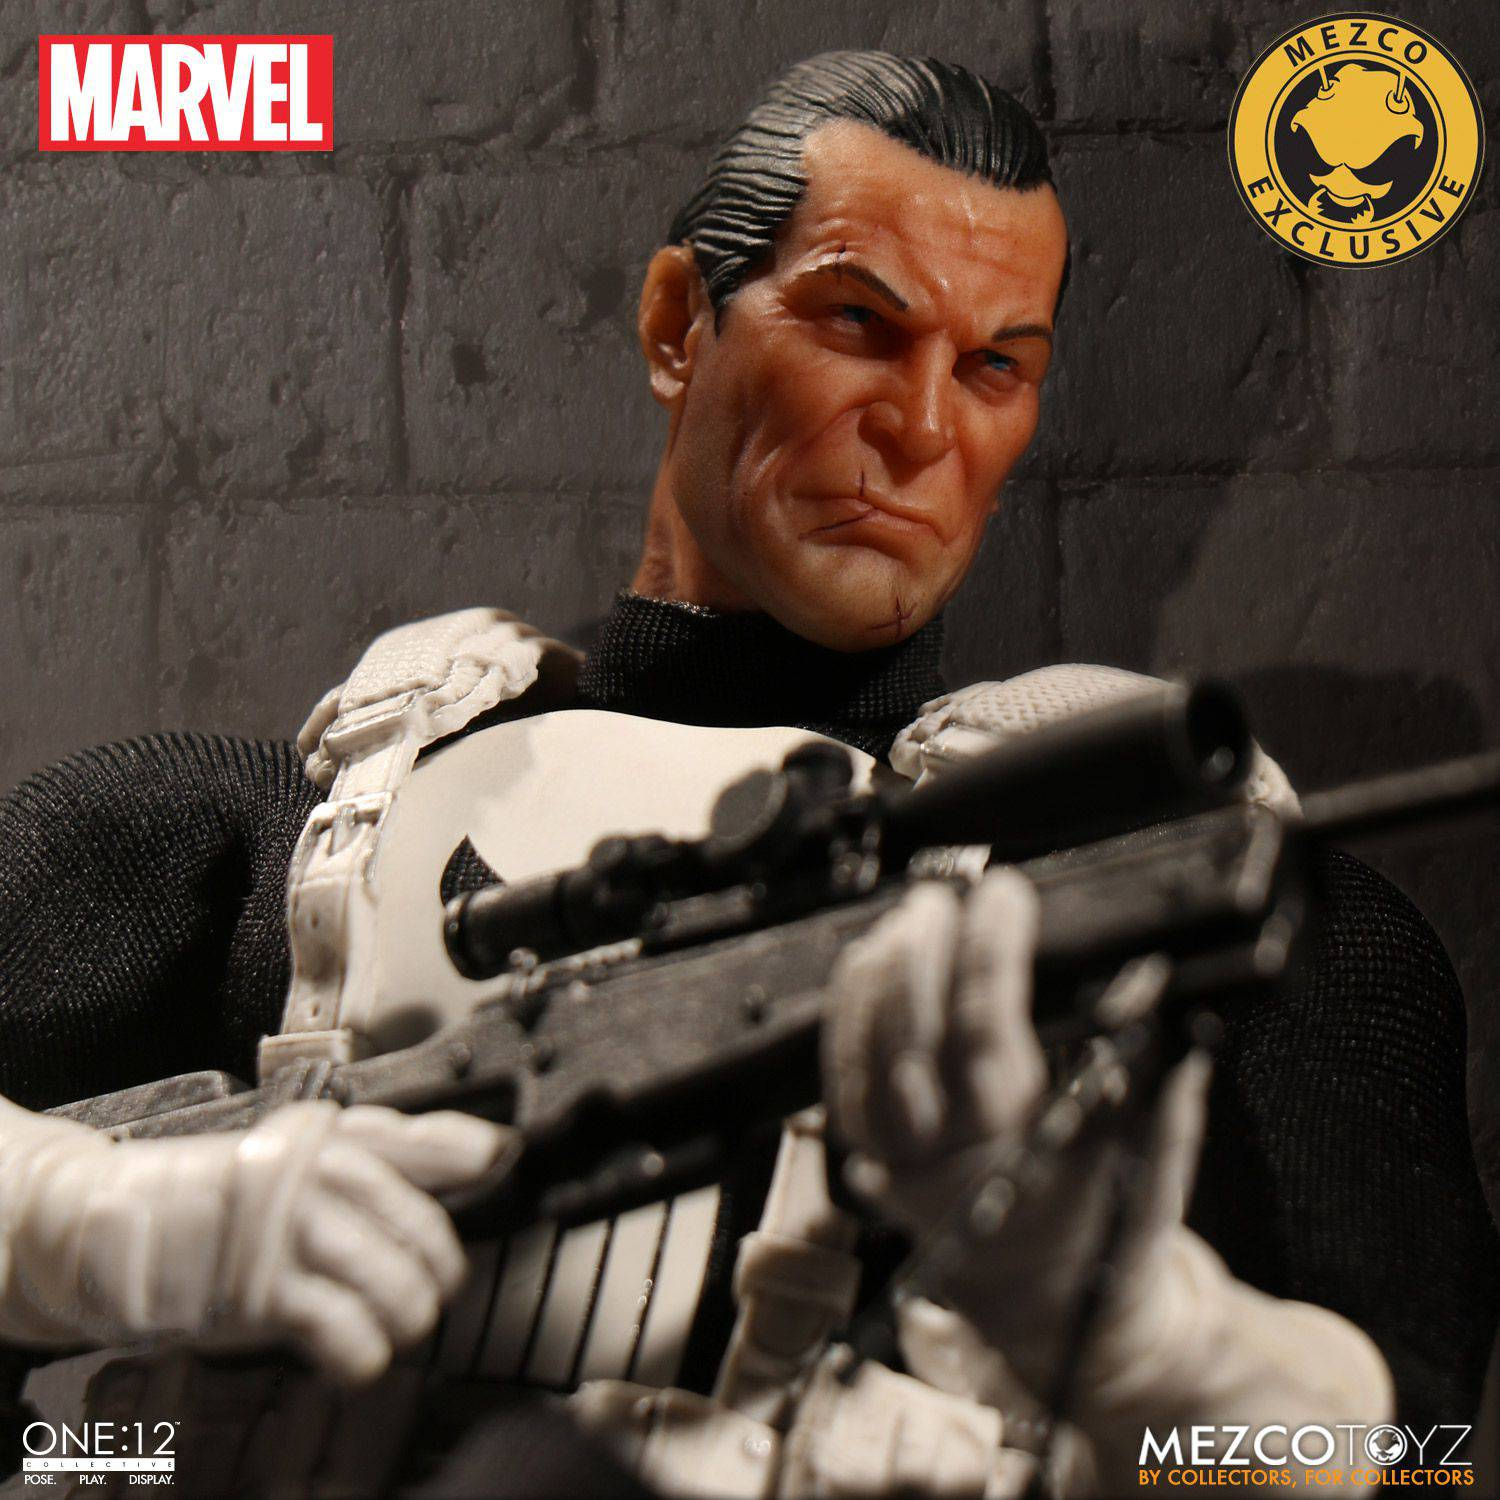 Mezco-Classic-Punisher-005